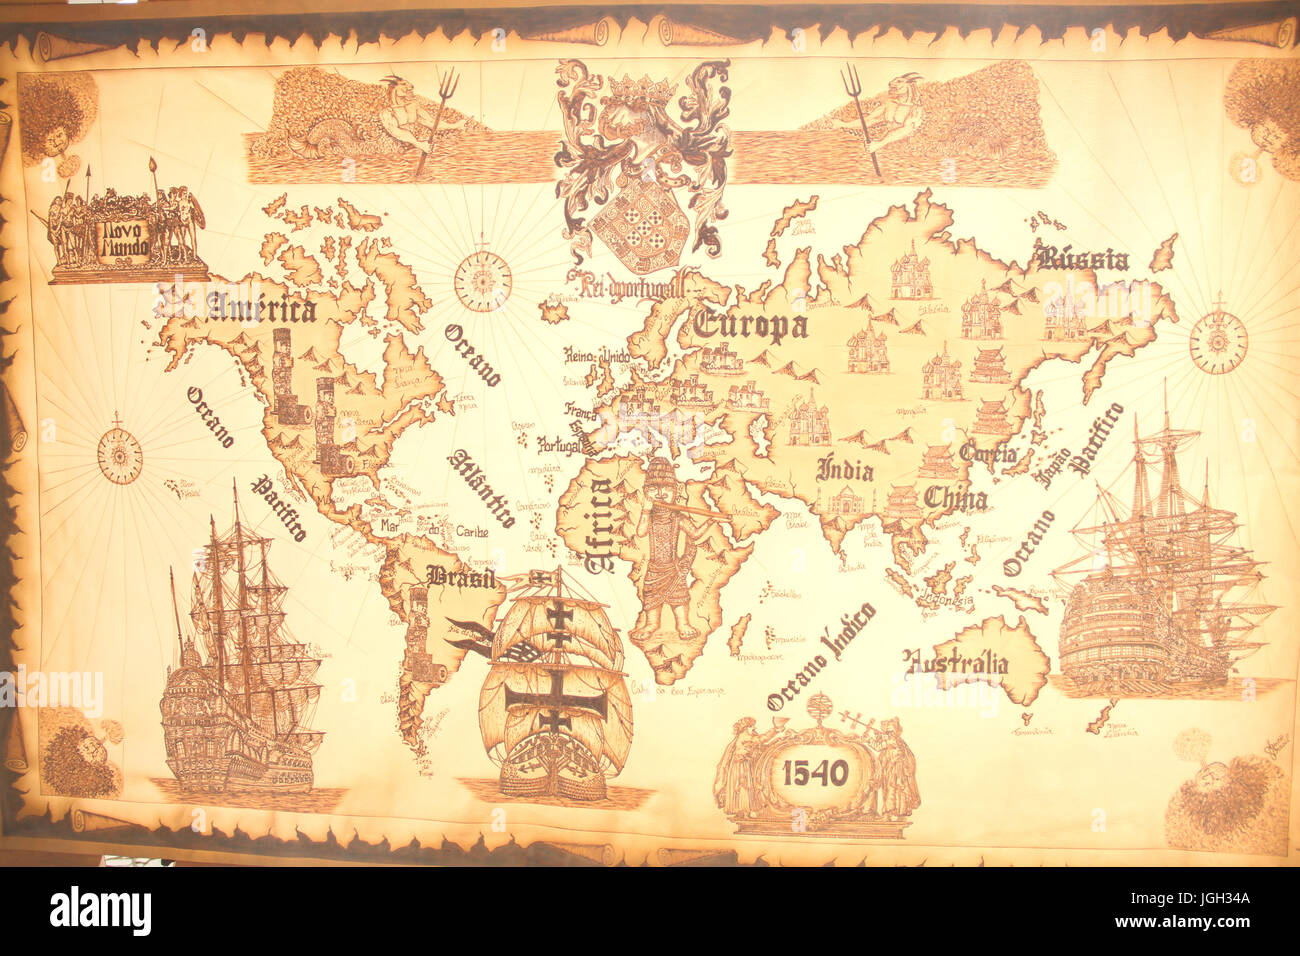 Old world map 2016 center rio de janeiro brazil stock photo old world map 2016 center rio de janeiro brazil gumiabroncs Gallery